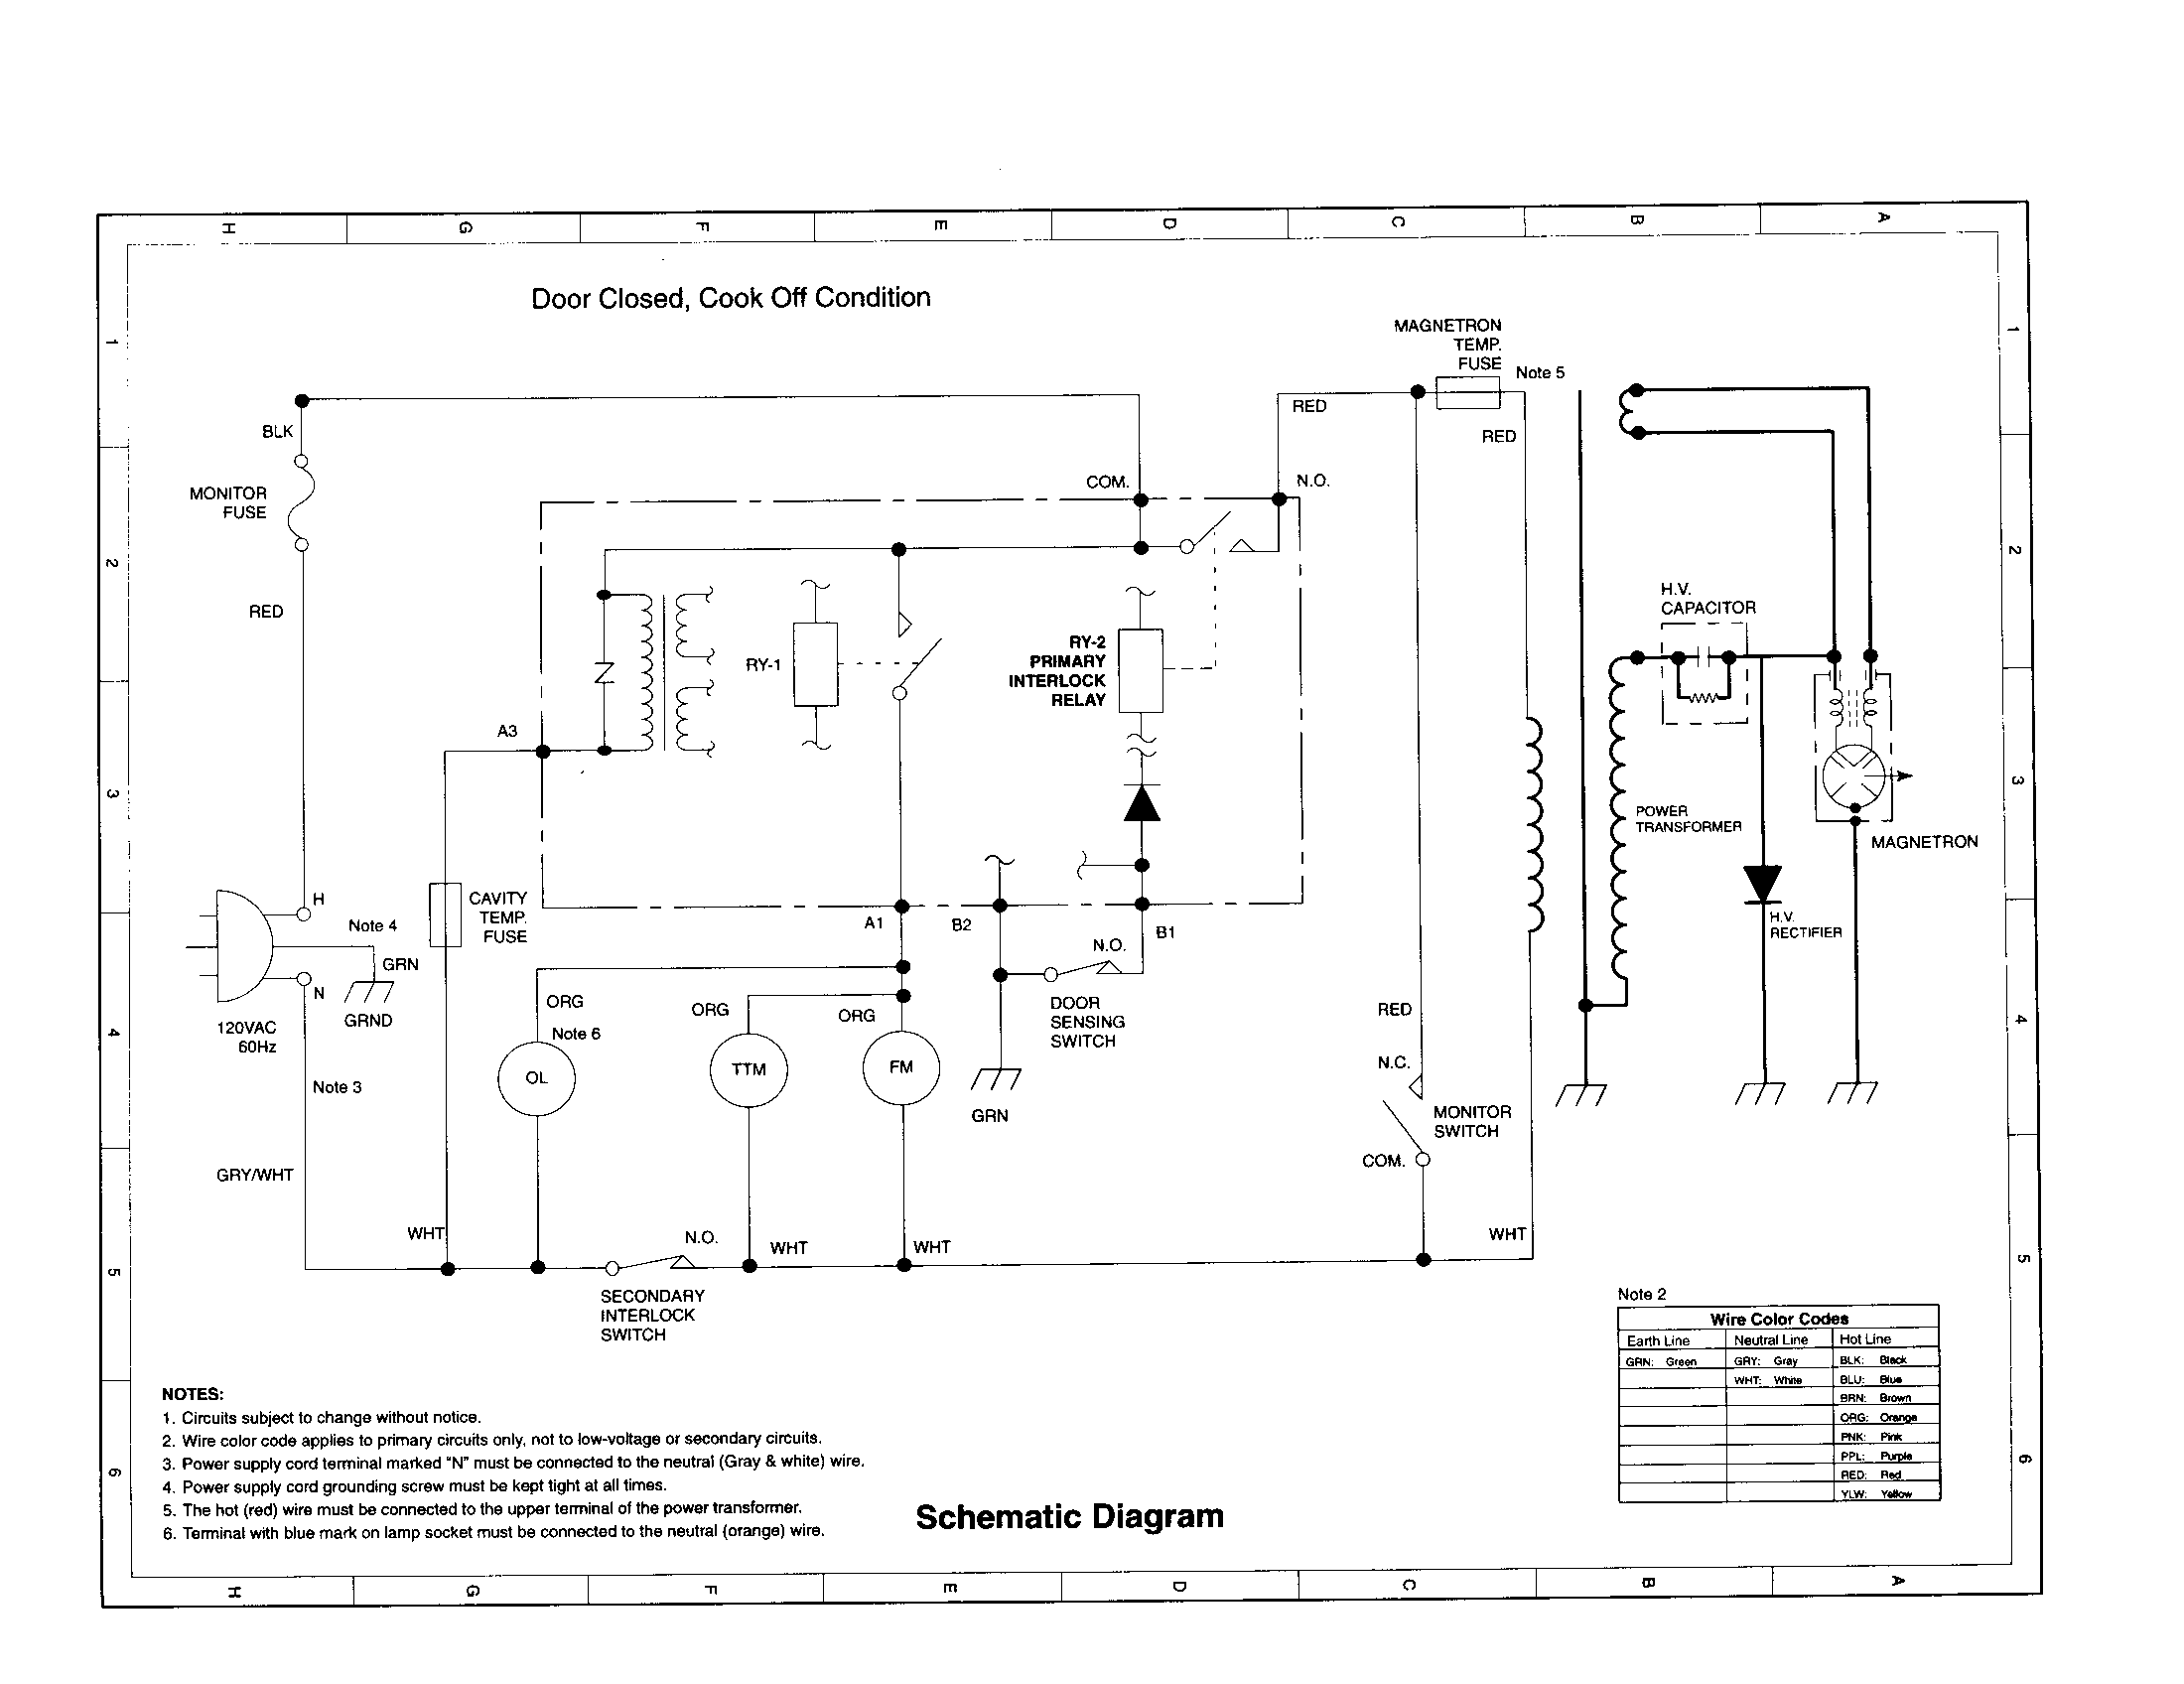 Schematic Diagrams And Or Circuit Diagram